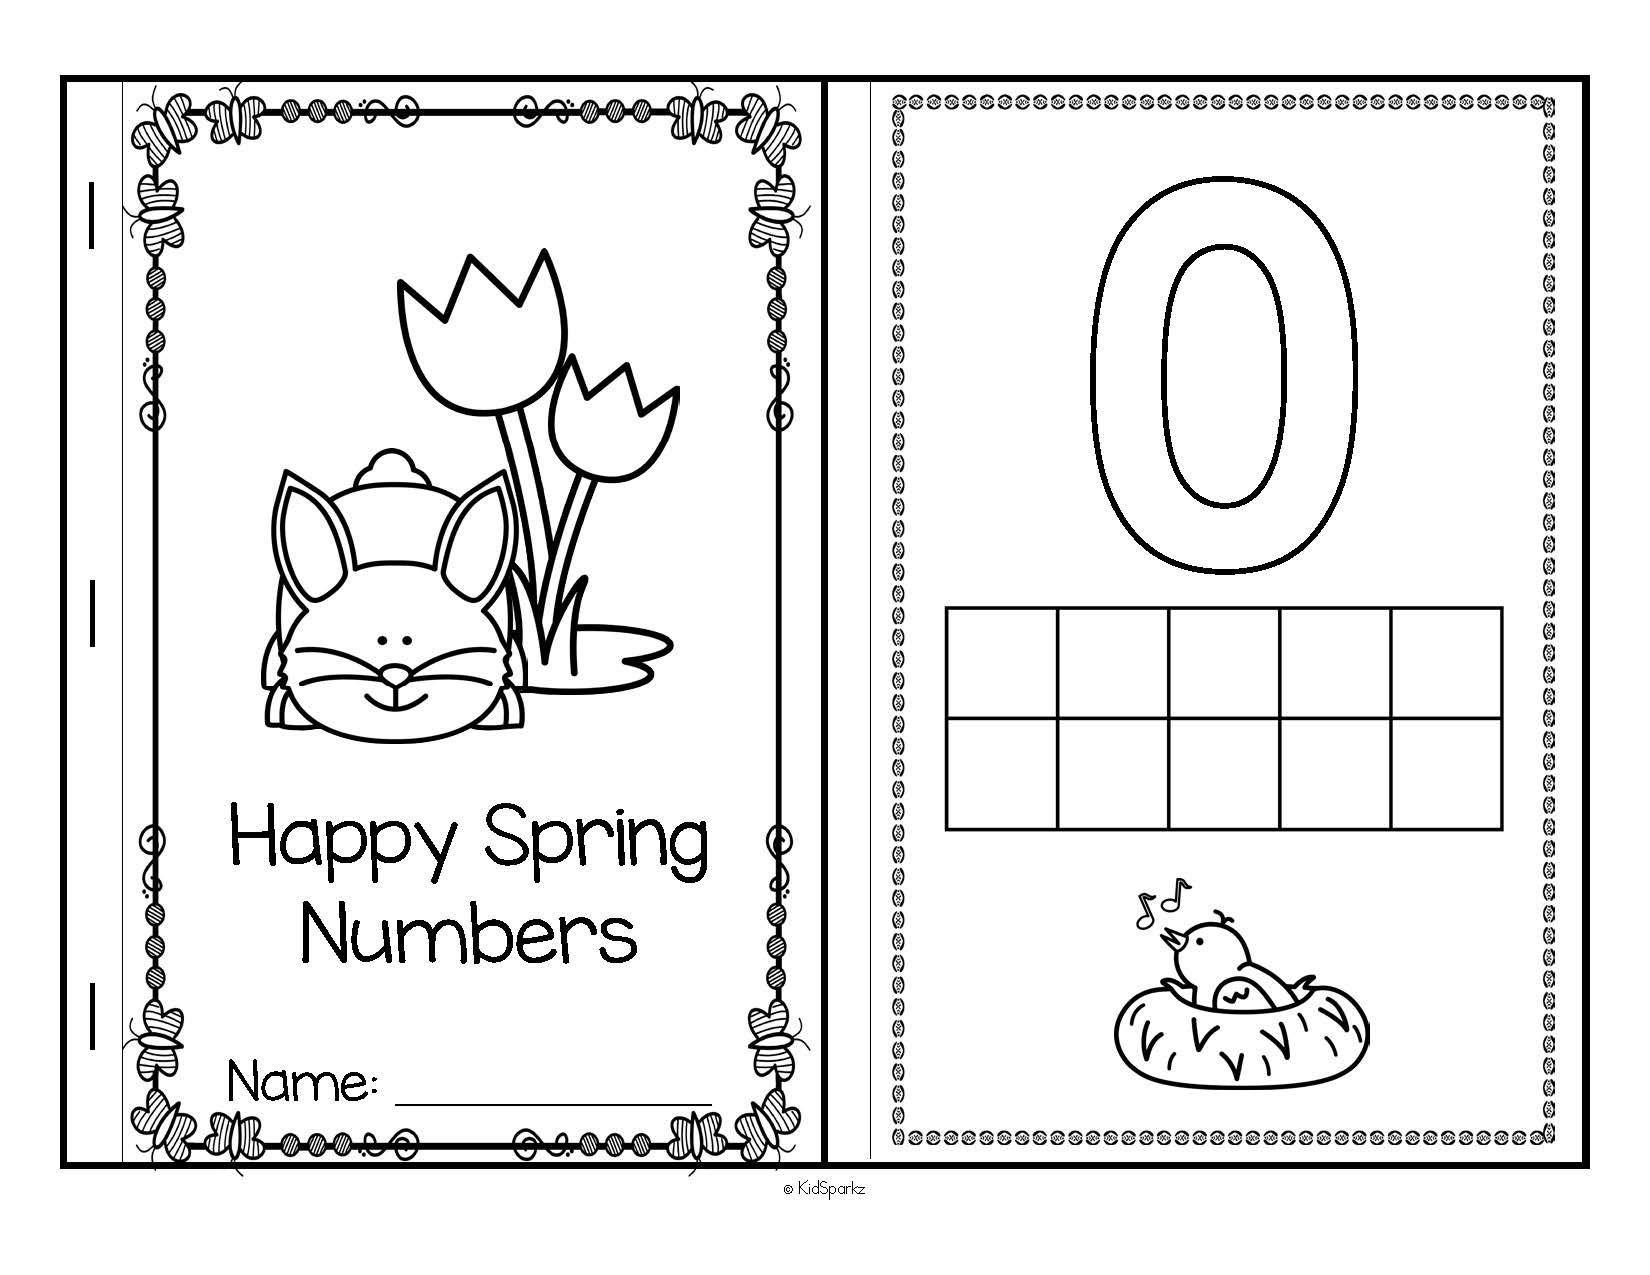 SPRING Theme Numbers 10 Frames Using Bingo Daubers